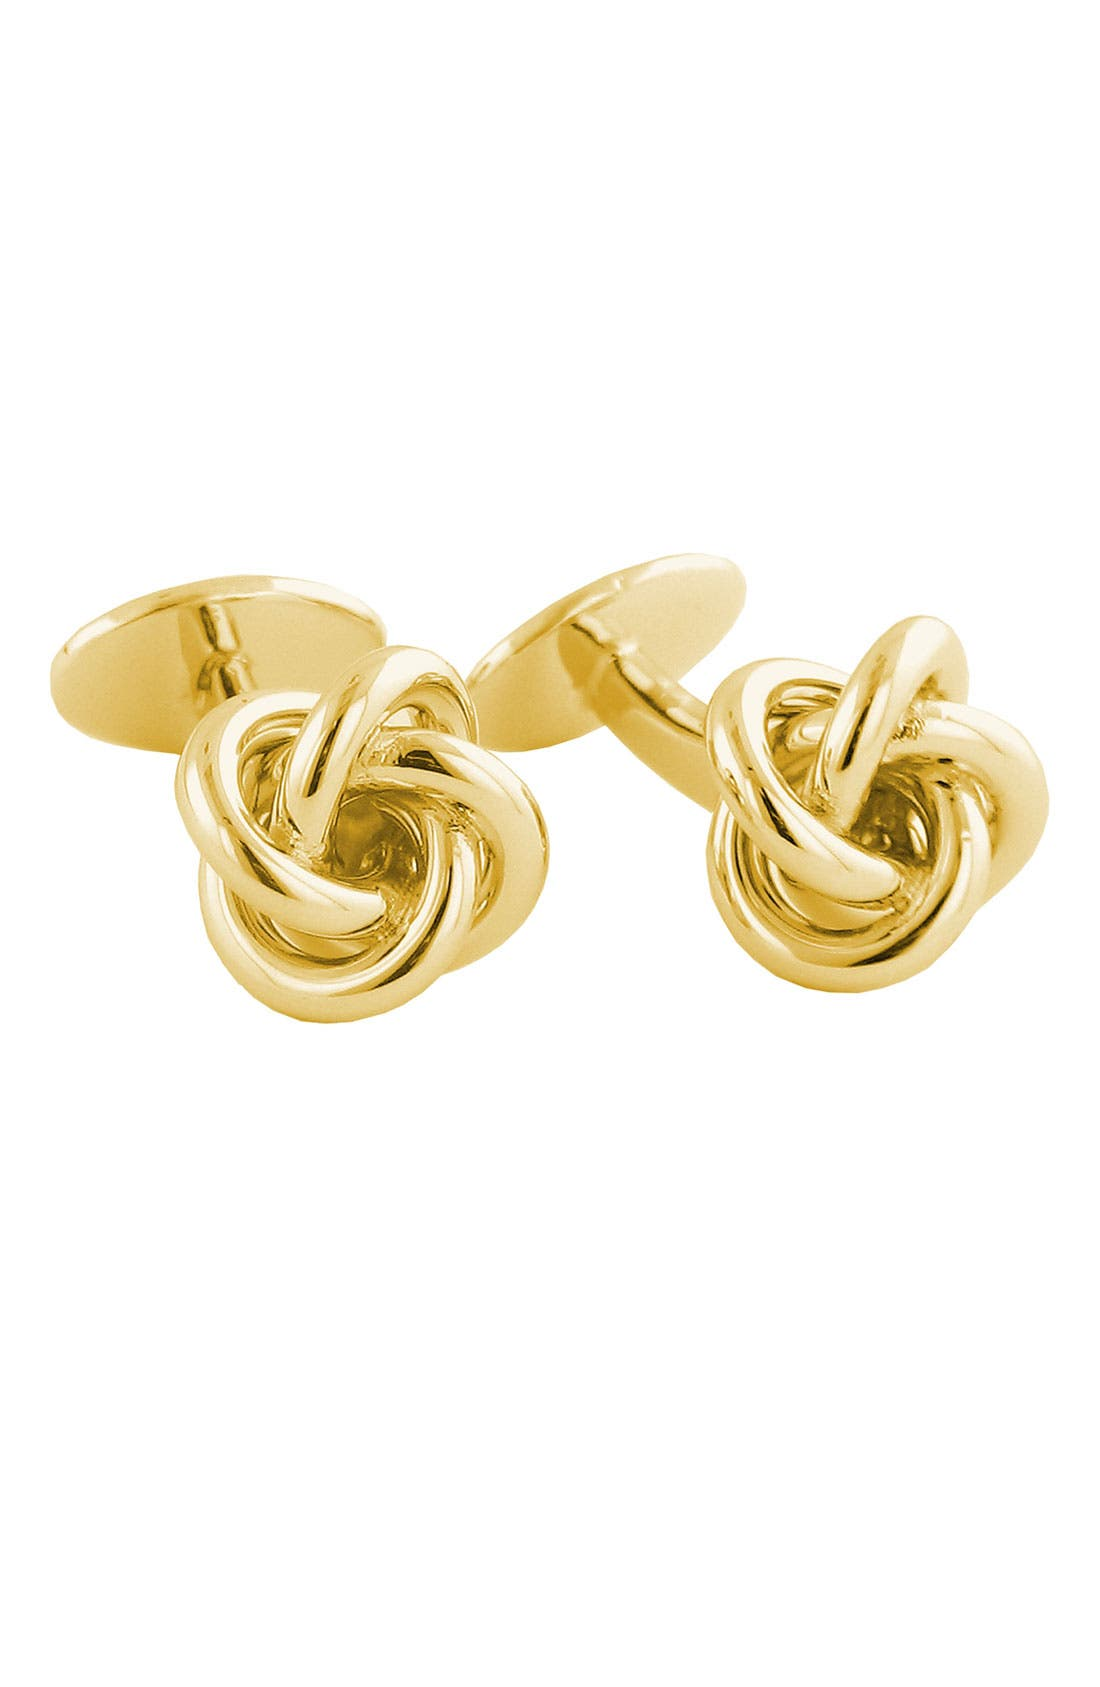 Knot Cuff Links,                             Main thumbnail 8, color,